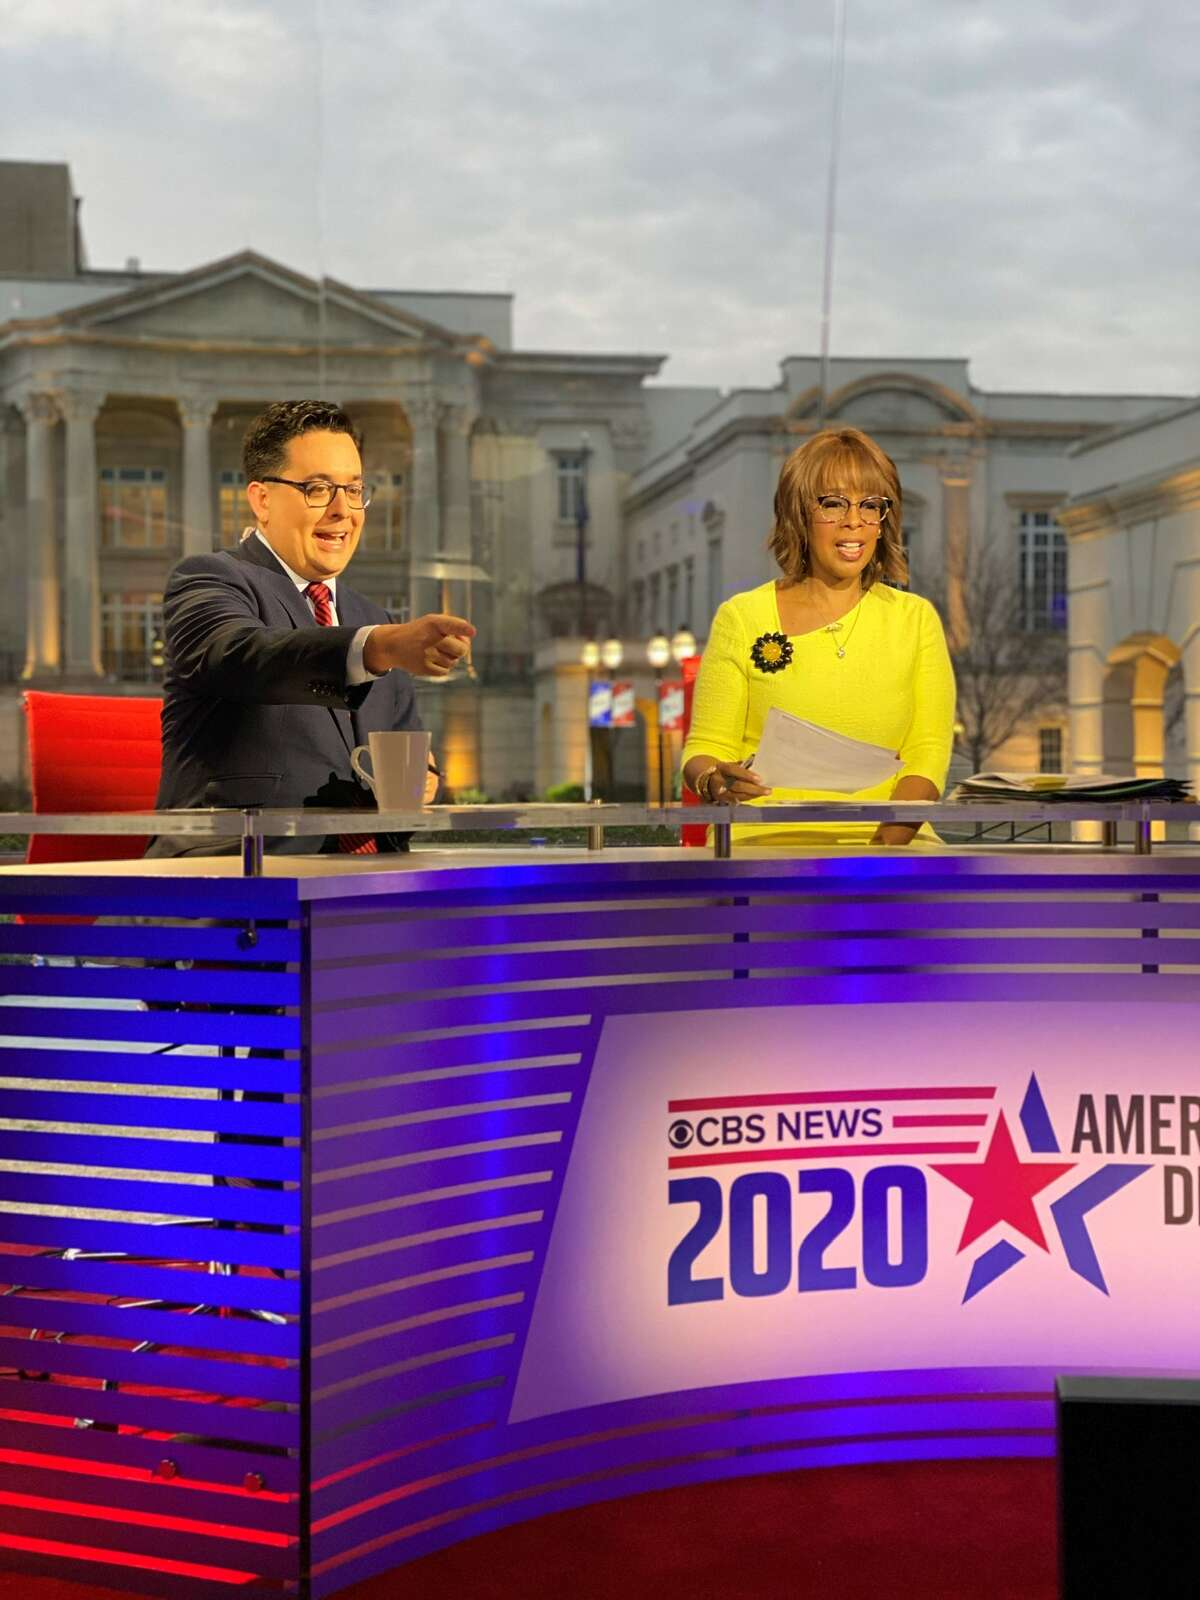 Ed O'Keefe and Gayle King during a CBS News program.